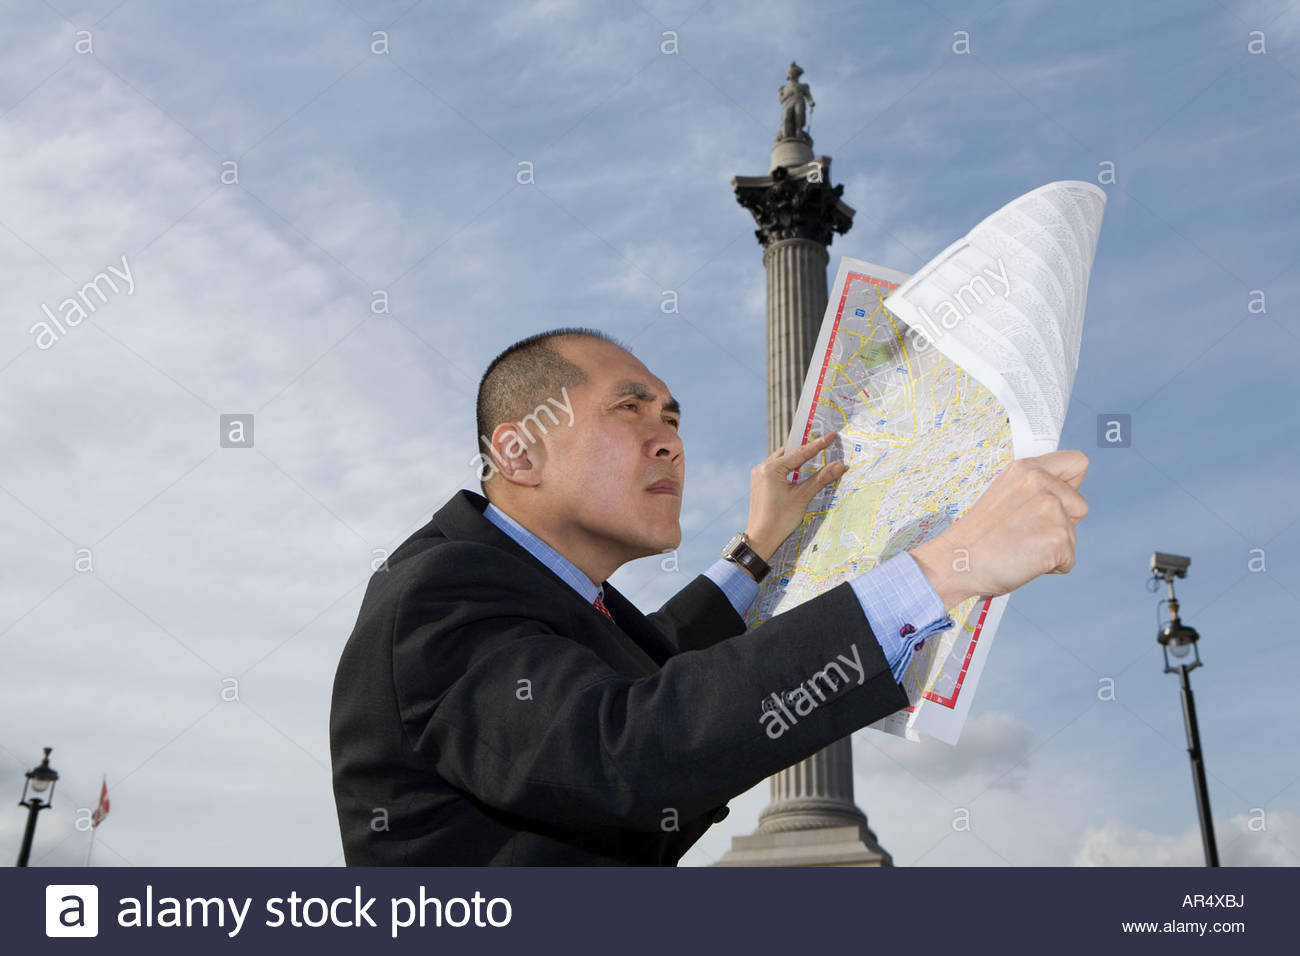 Man looking at map - Stock Image